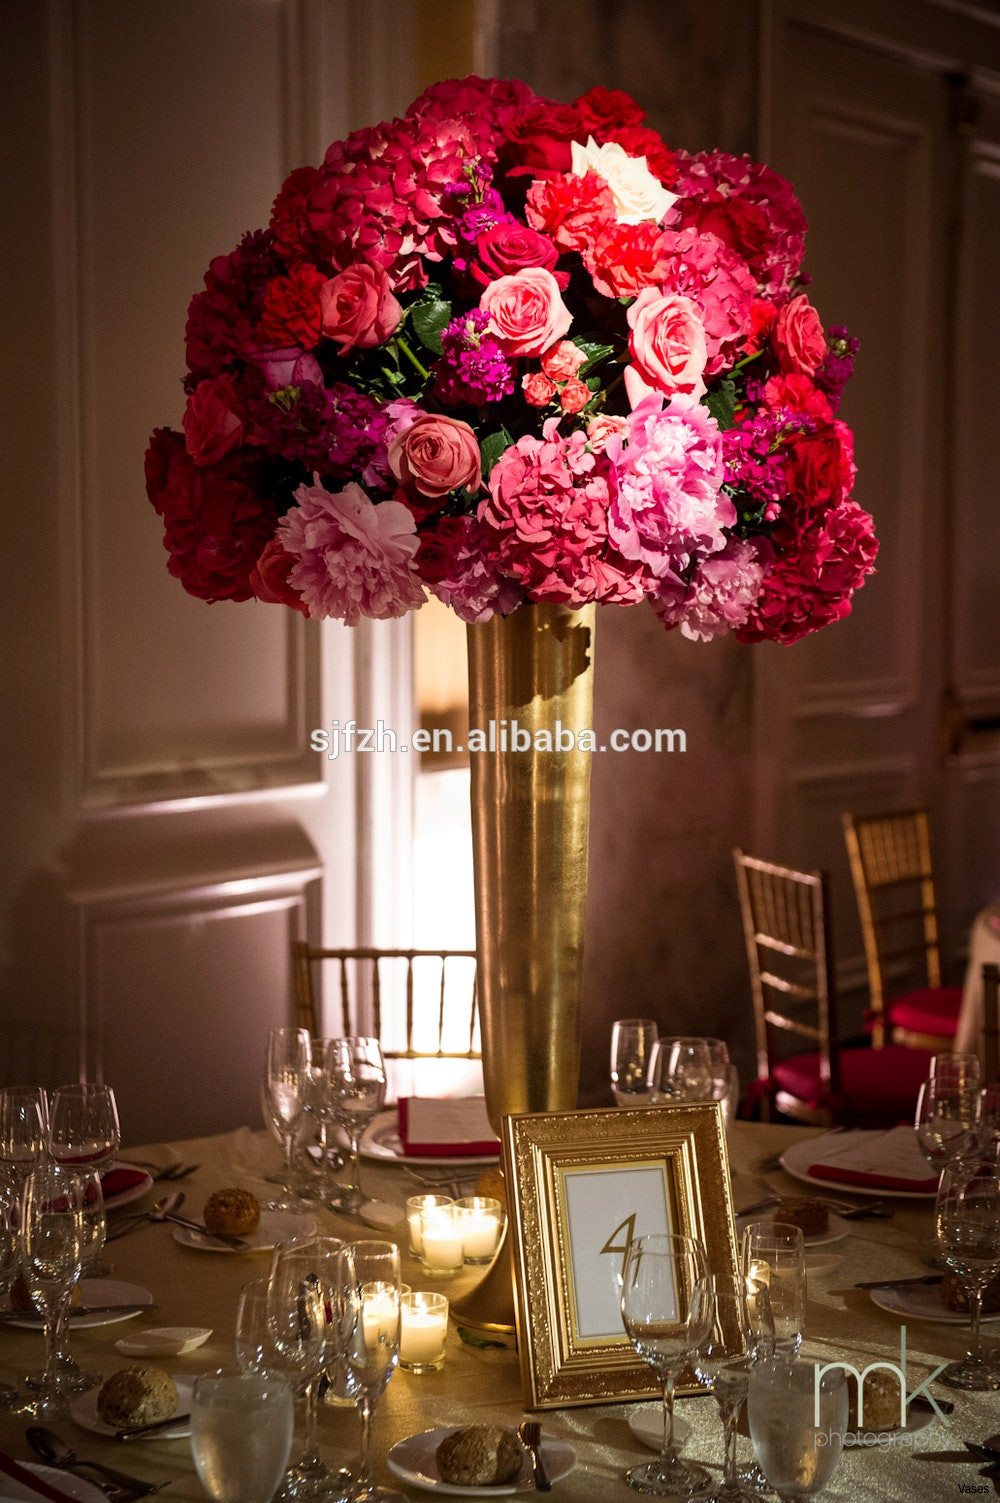 pink vase glass of gold wedding decorations fresh dsc7285h vases gold pedestal vase in gold wedding decorations best of decoration excellent picture accessories for wedding table using of go